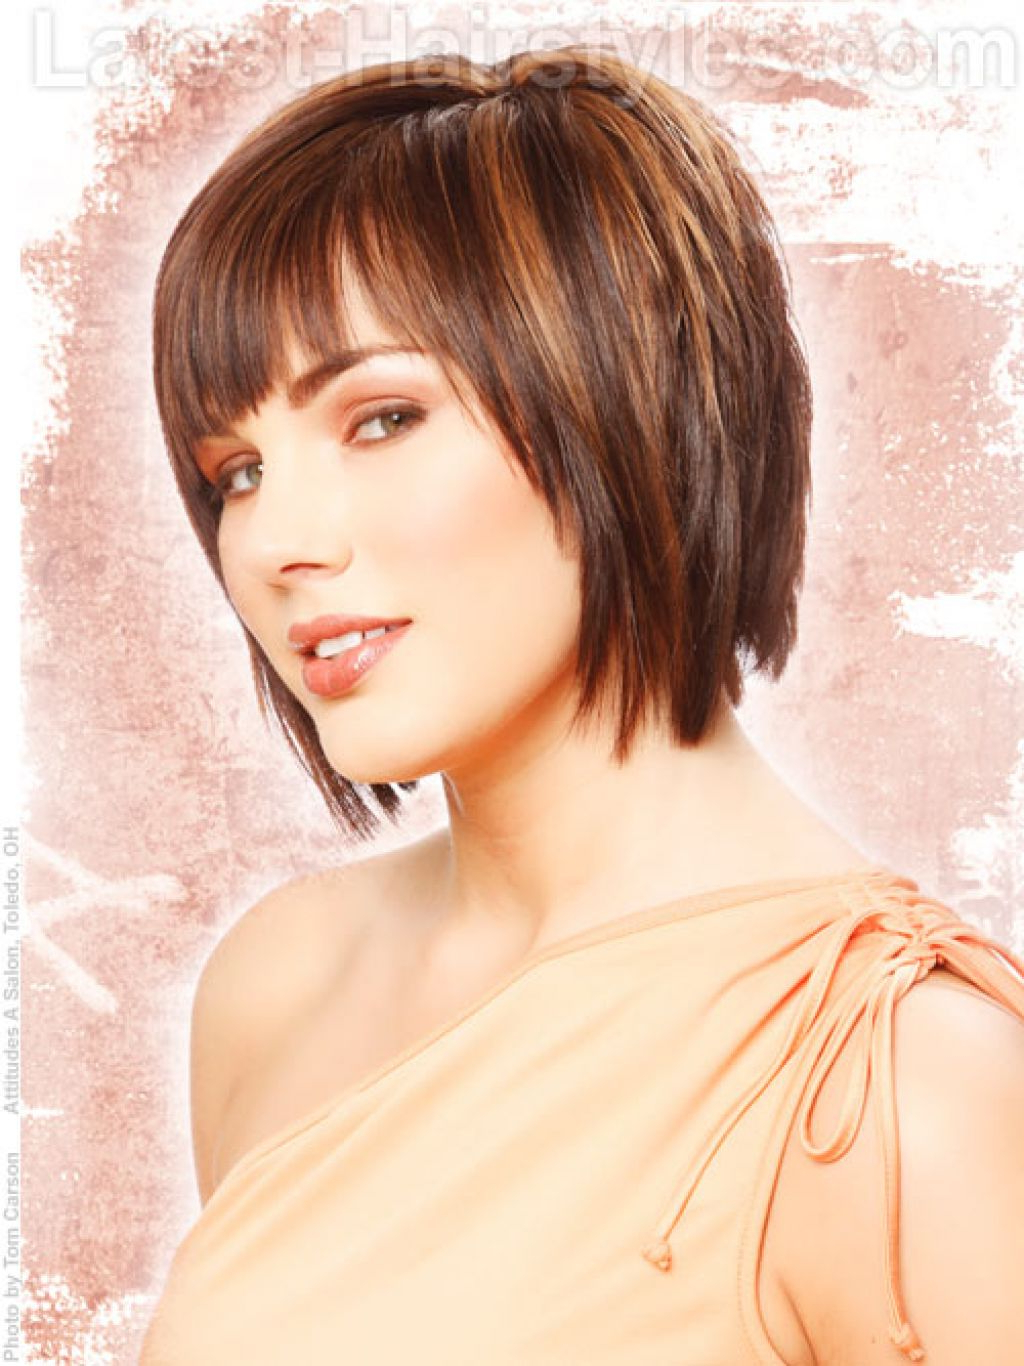 Layered Short Hairstyles For Women Women Shorts Shorts And Short With Regard To Layered Short Hairstyles With Bangs (View 23 of 25)